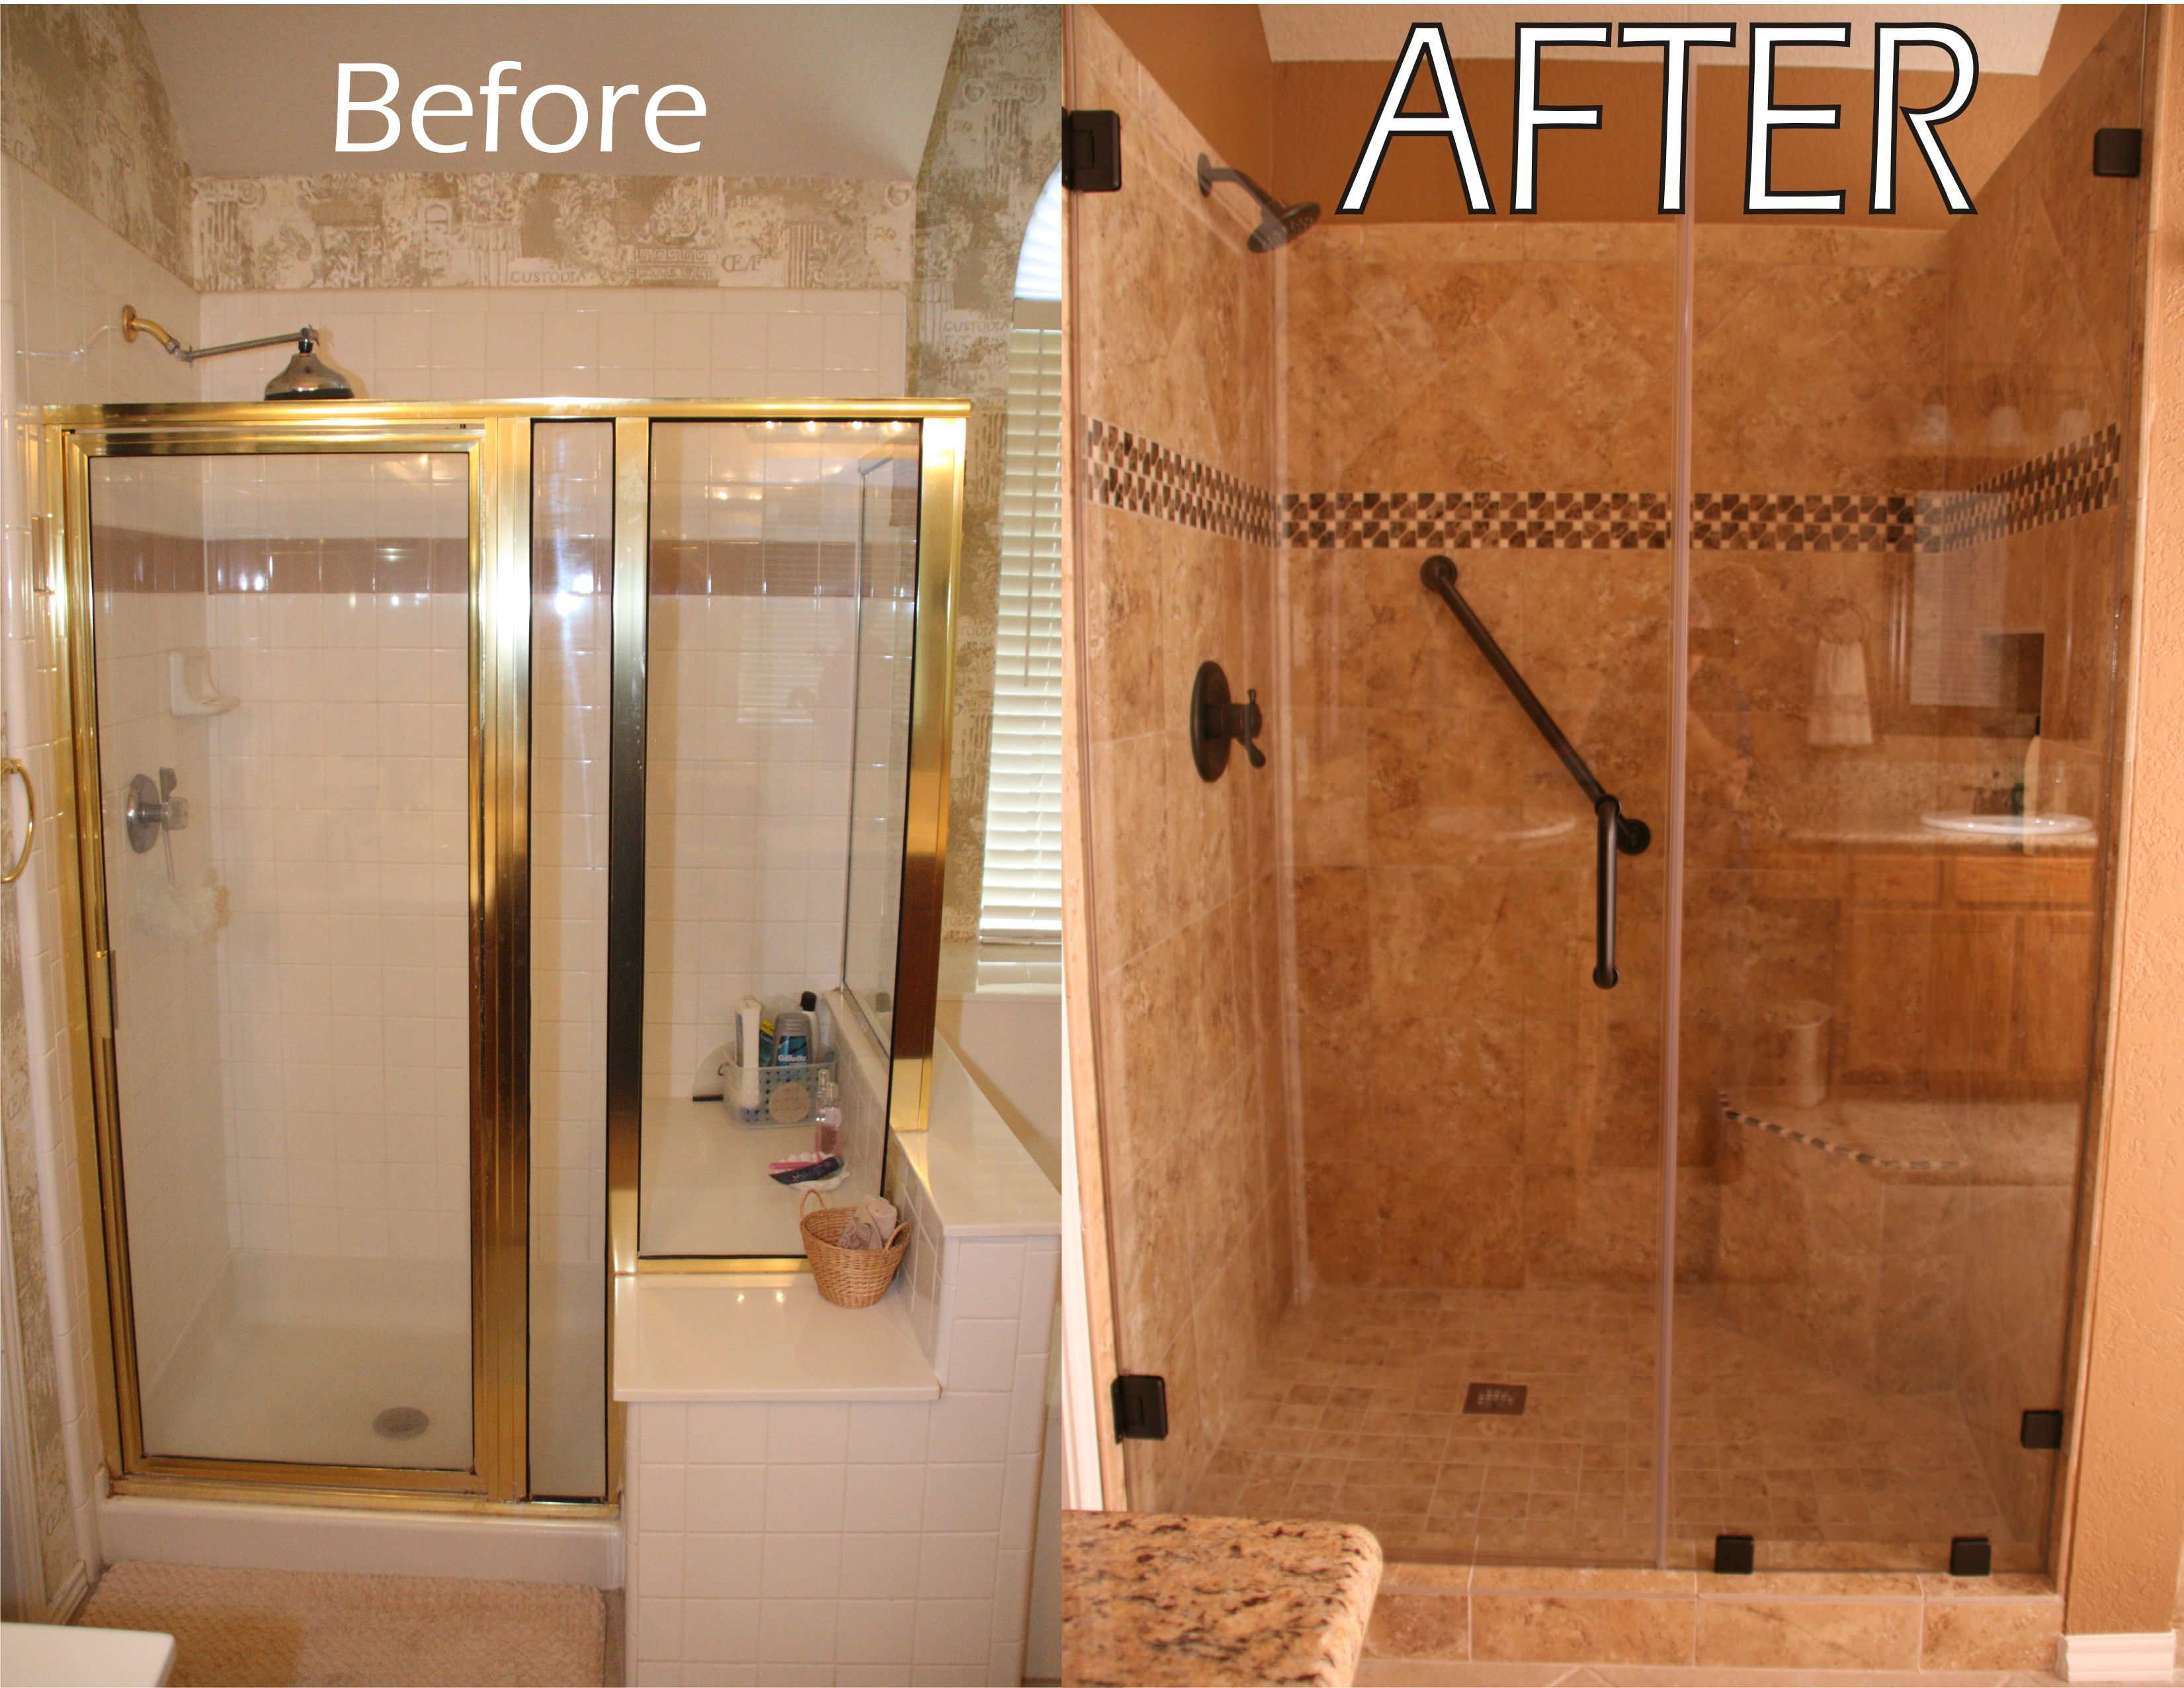 bathroom remodels make a big splash this spring | tile showers